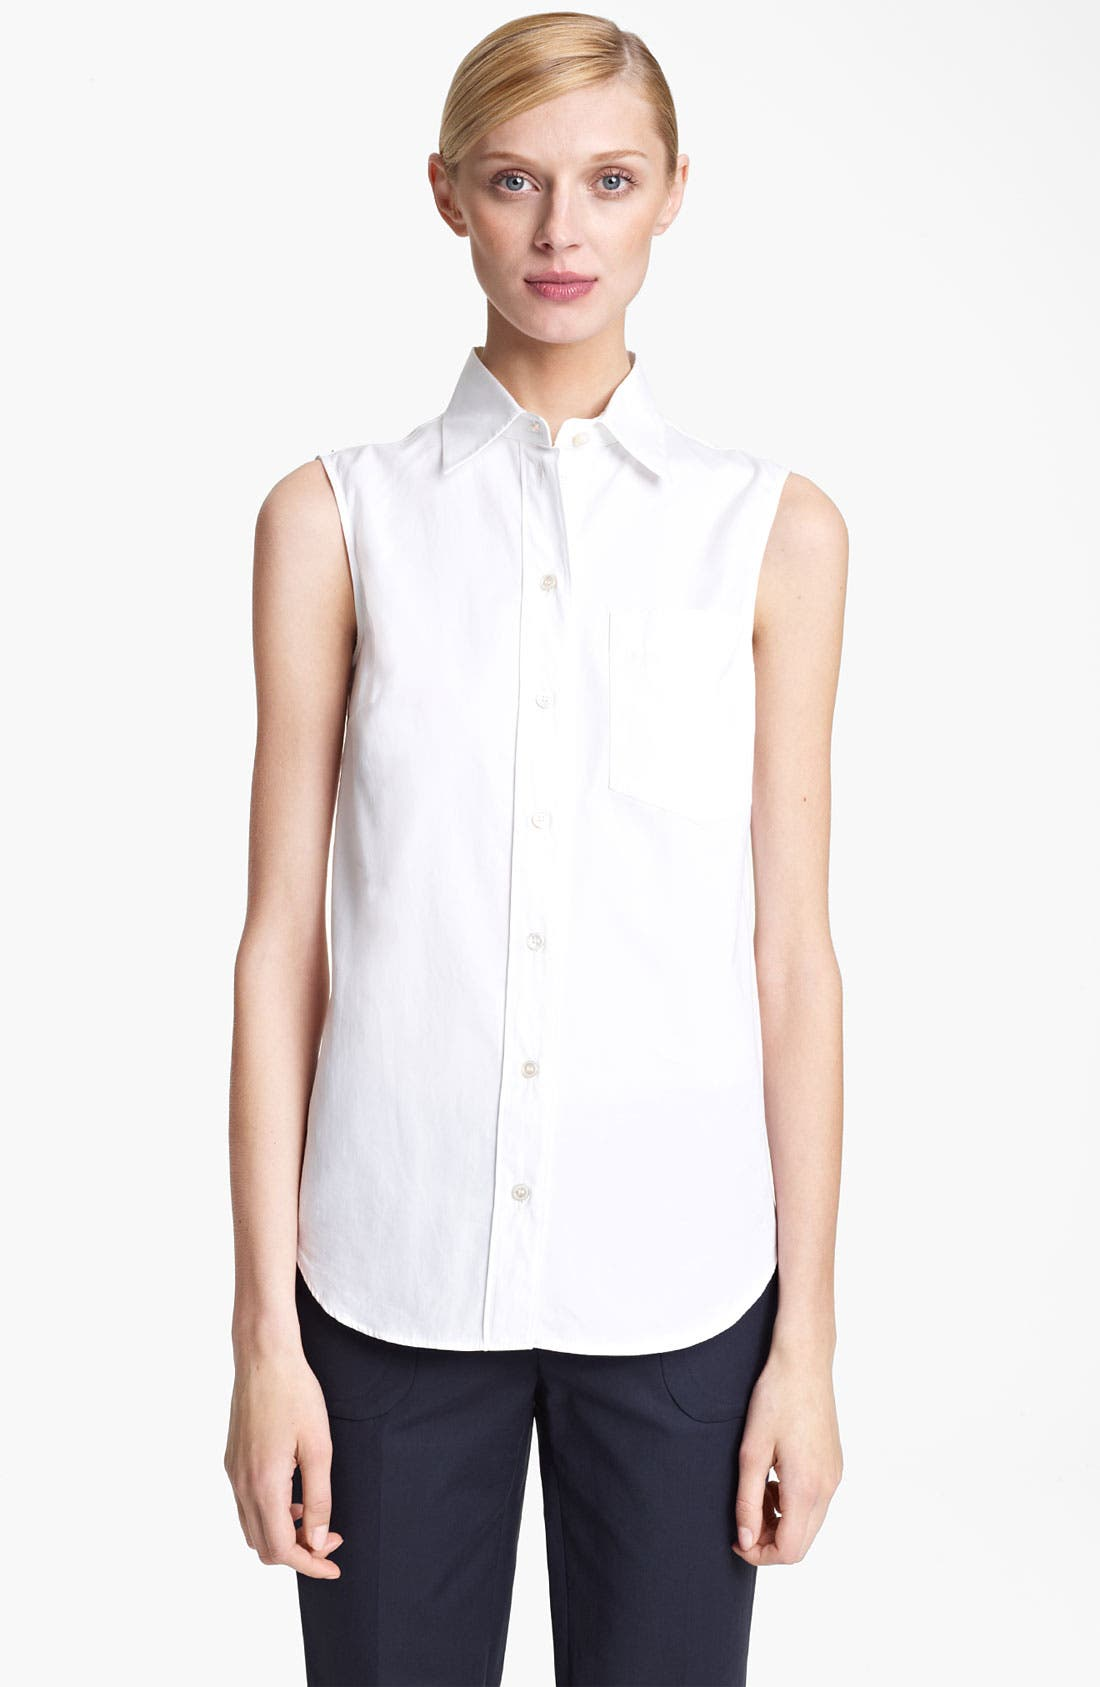 Main Image - Michael Kors Sleeveless Poplin Top